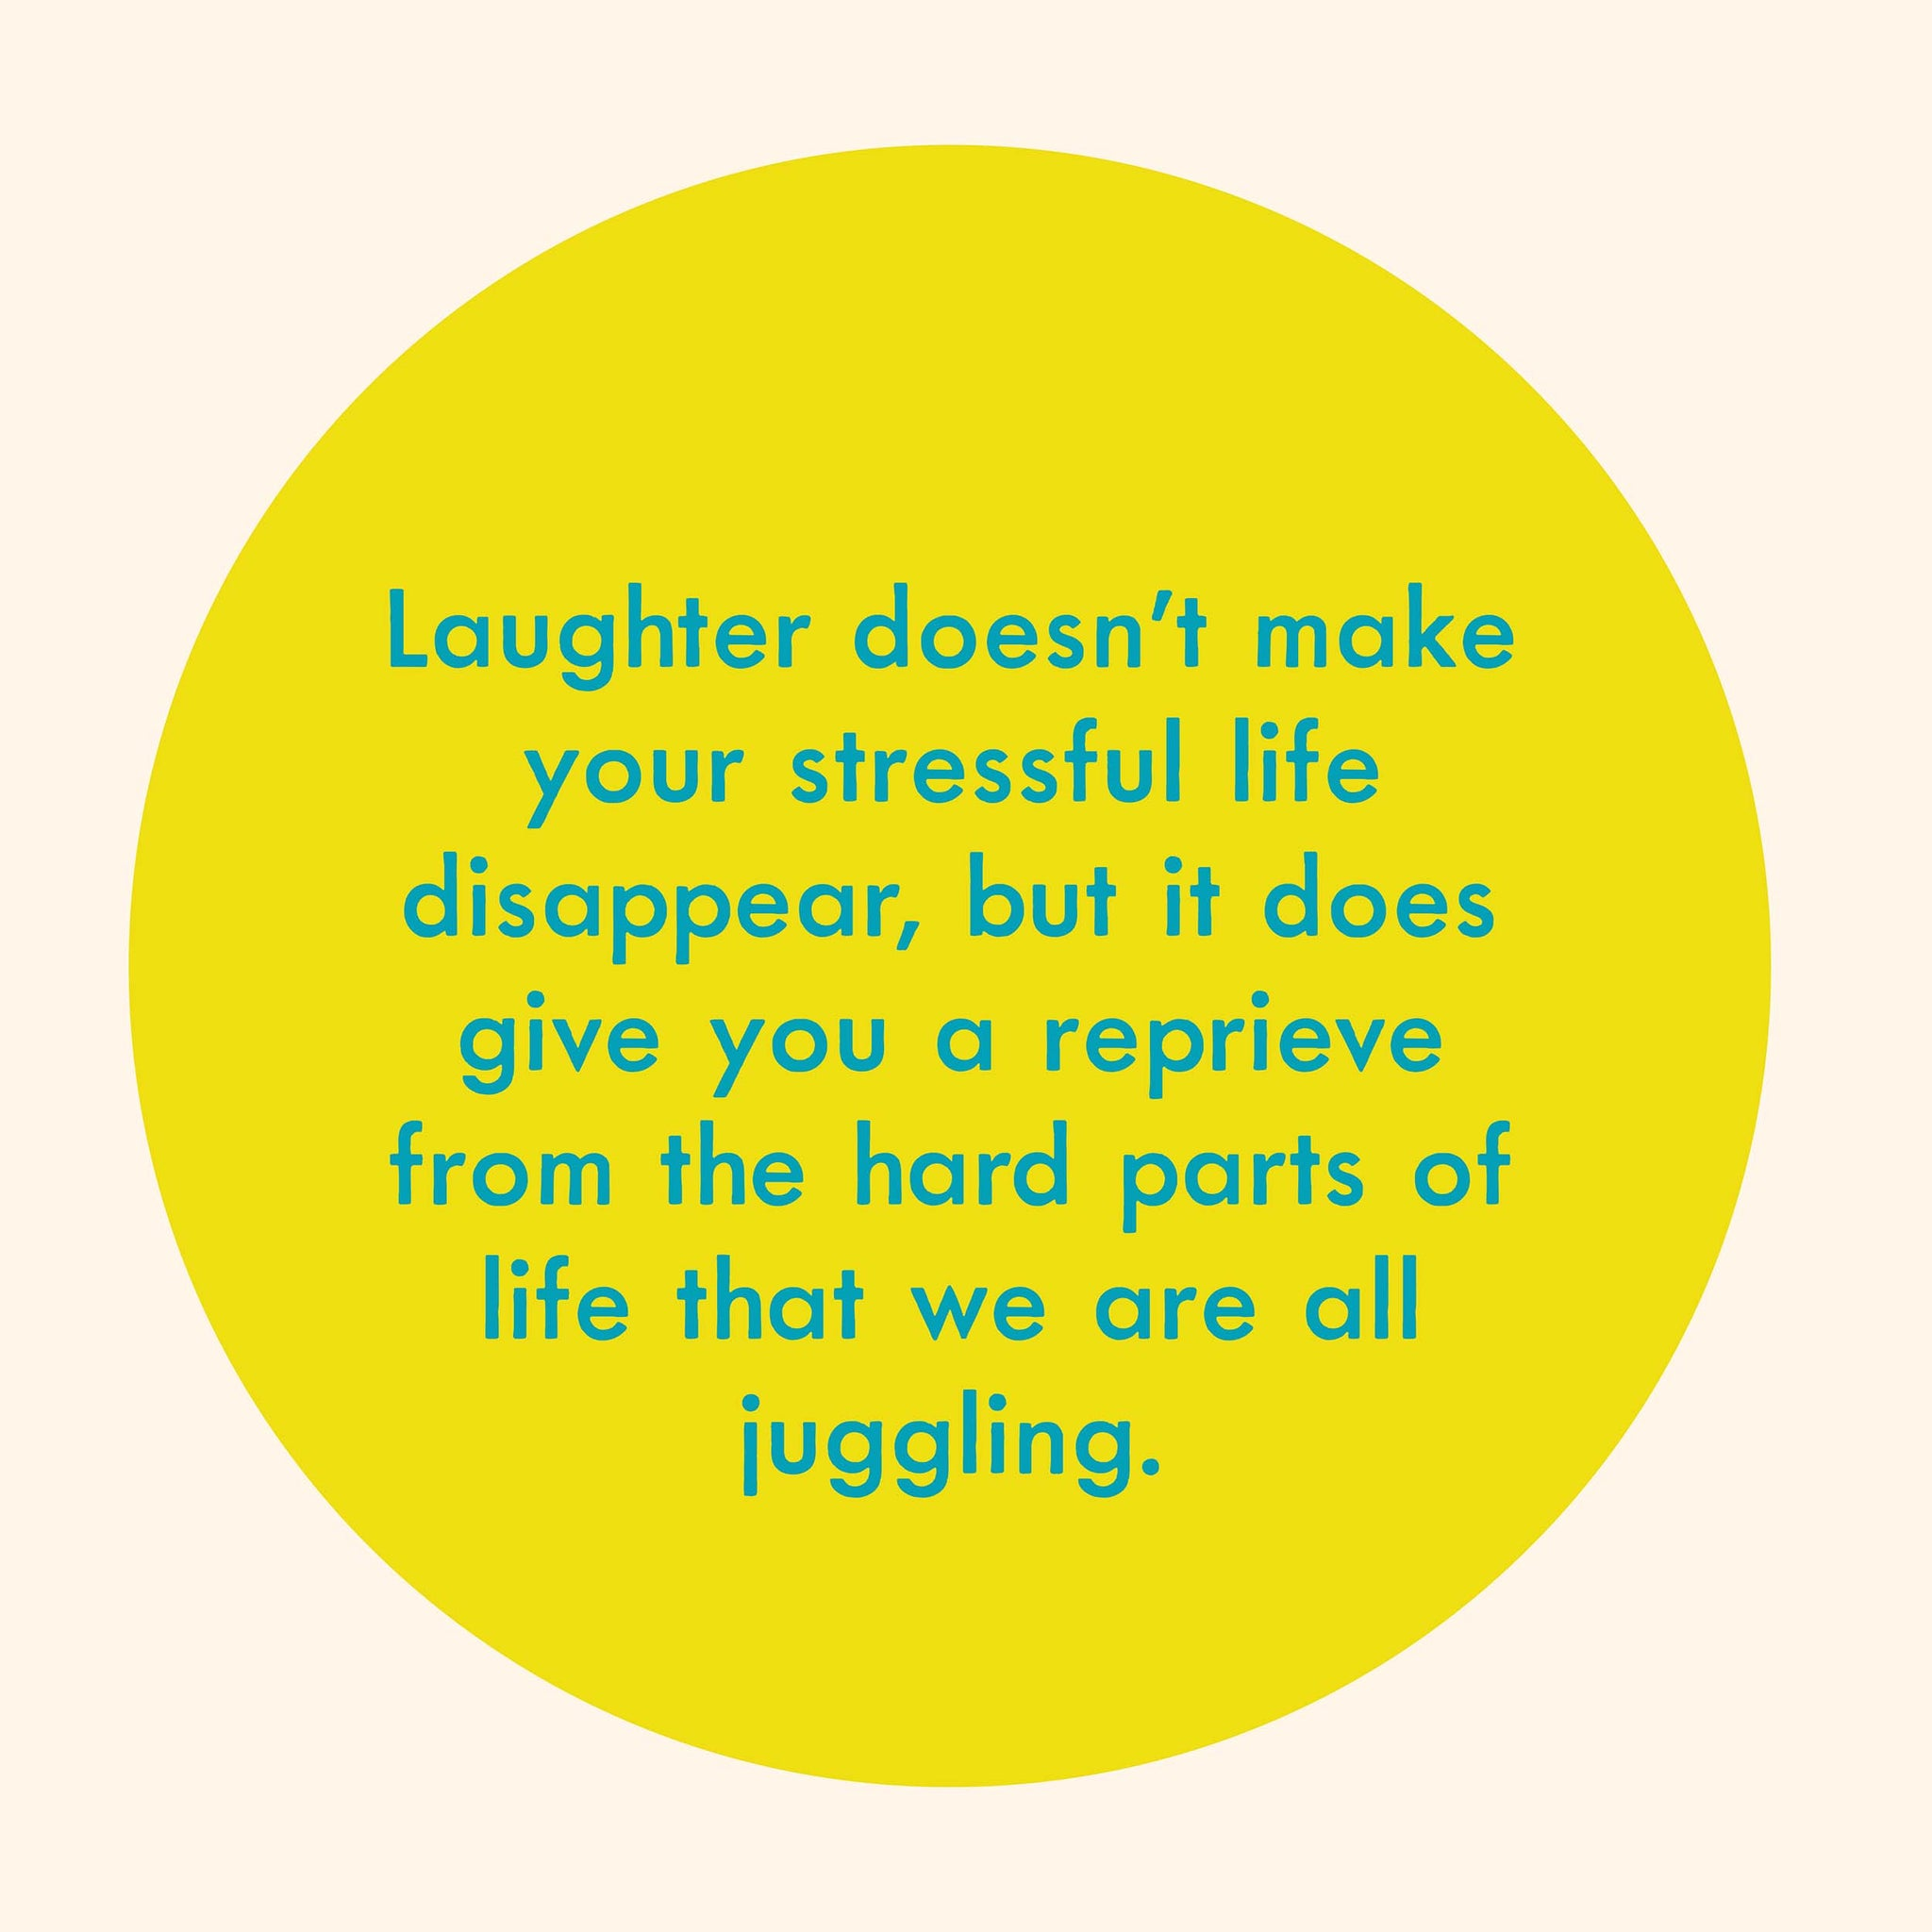 Laughter doesn't make your stressful life disappear, but it does give you a reprieve from the hard parts of life that we are all juggling.